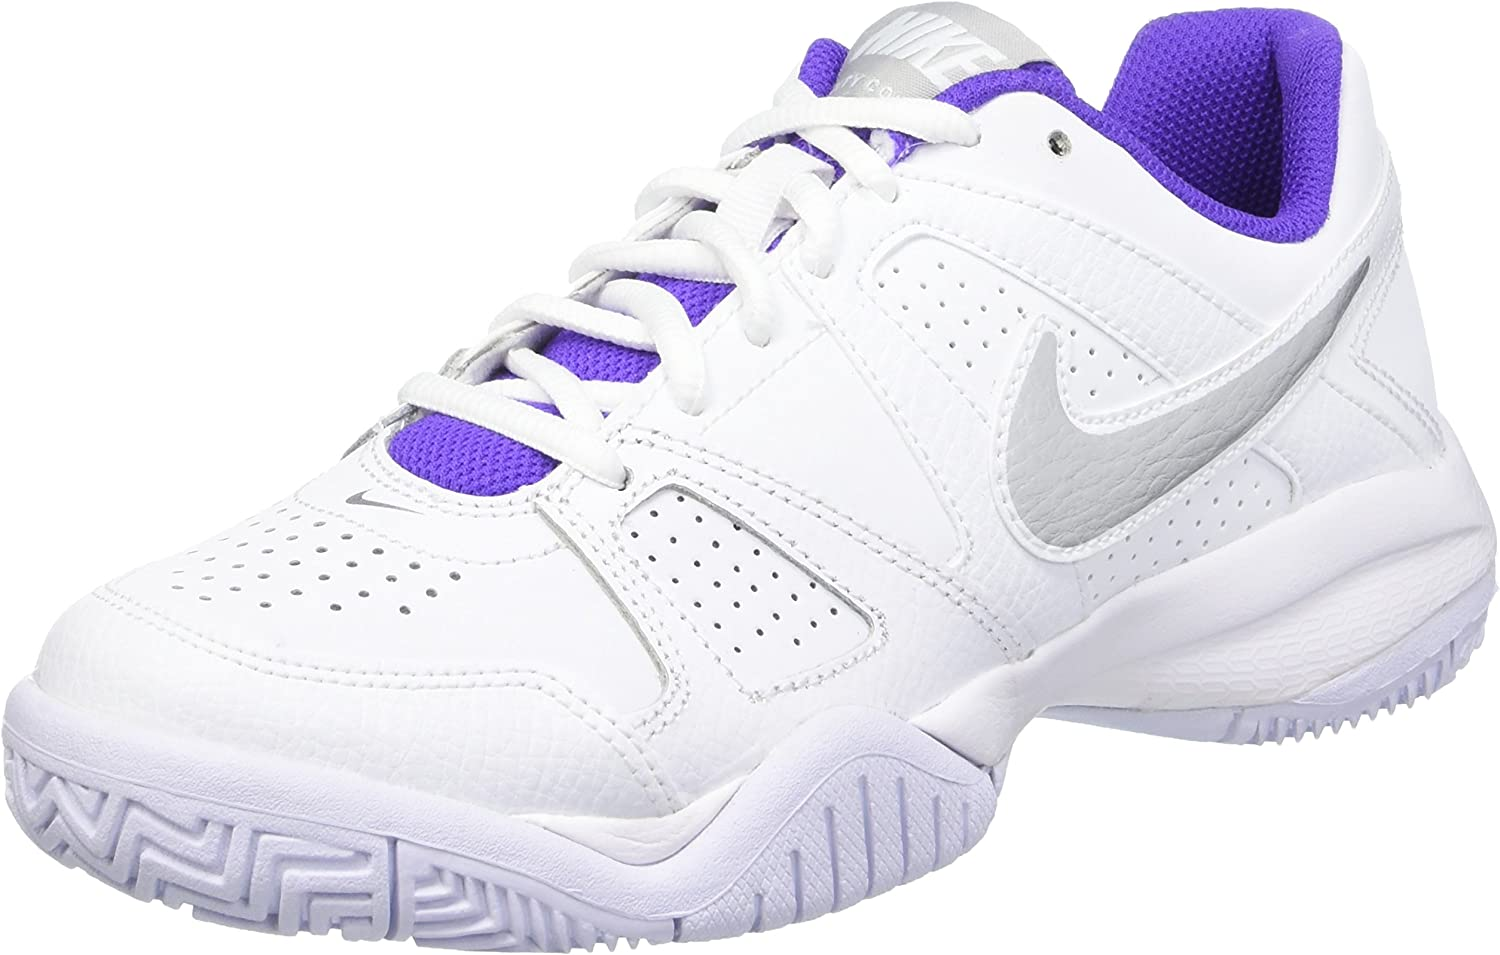 NIKE City Court 7 (GS), Zapatillas de Tenis para Niñas: Amazon.es ...